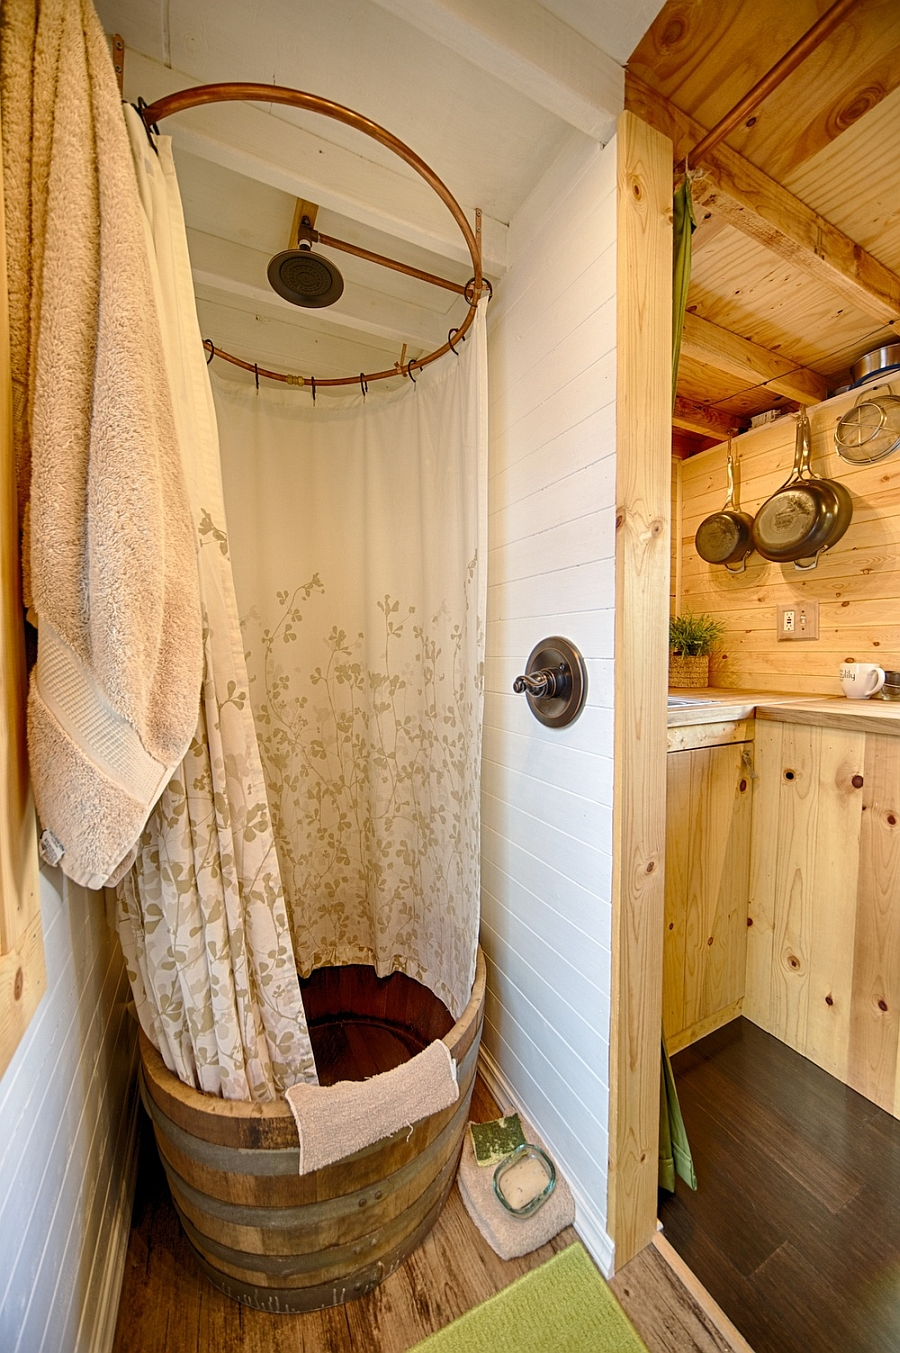 Shower space inside the tiny tack home